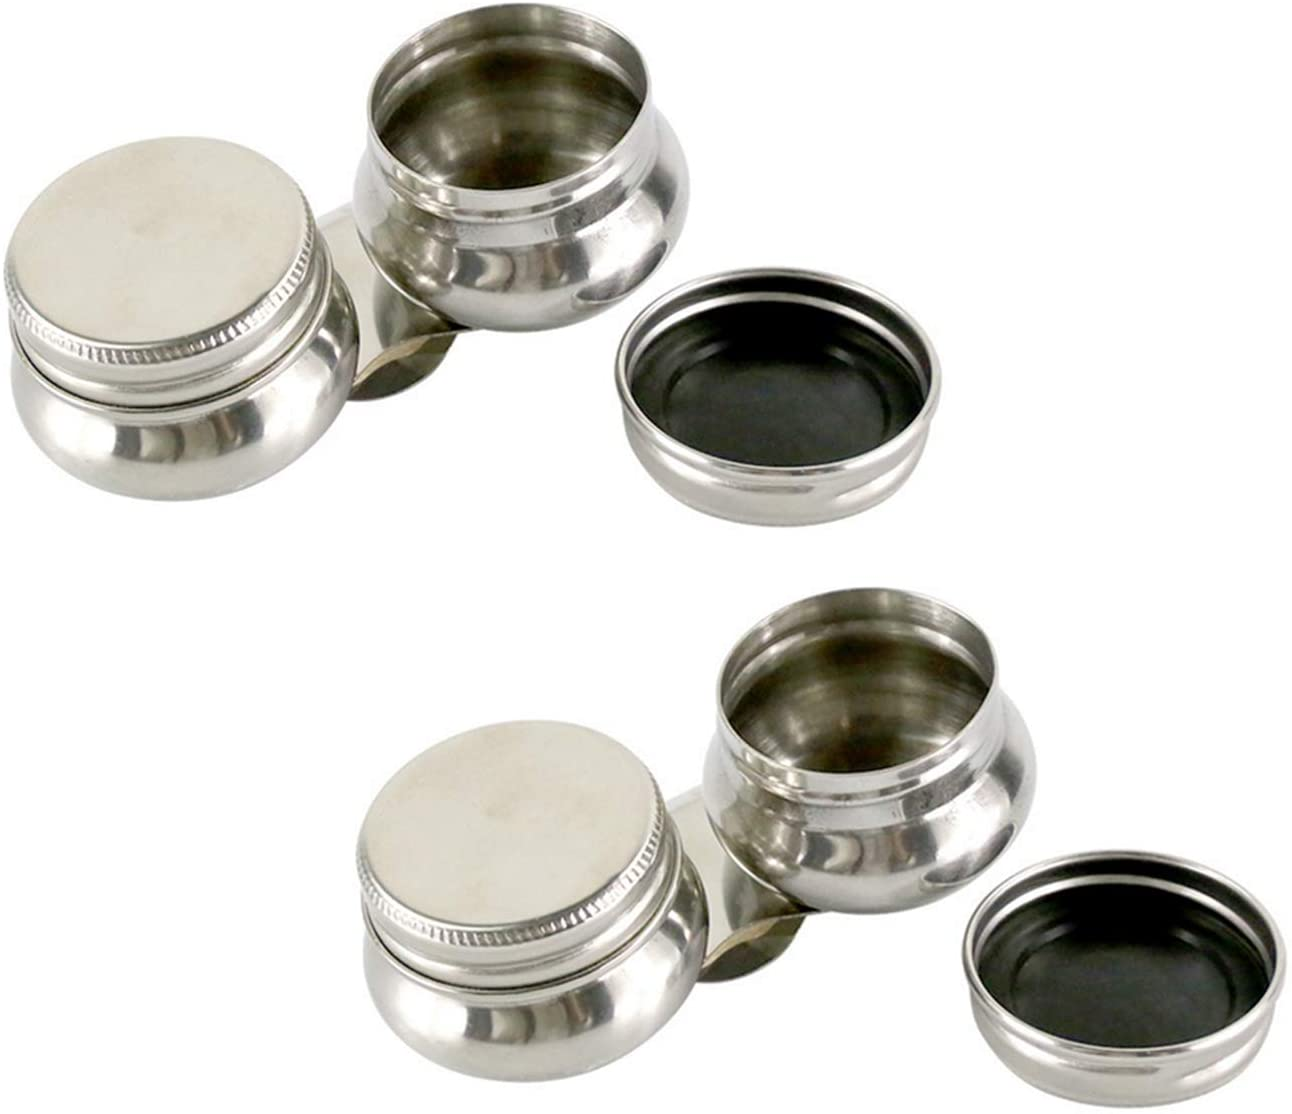 MIAO YUAN 2Pack Oil Palette Cup Double Dipper Painting Art Pallete Clip Pot Supplies Tools with Lid